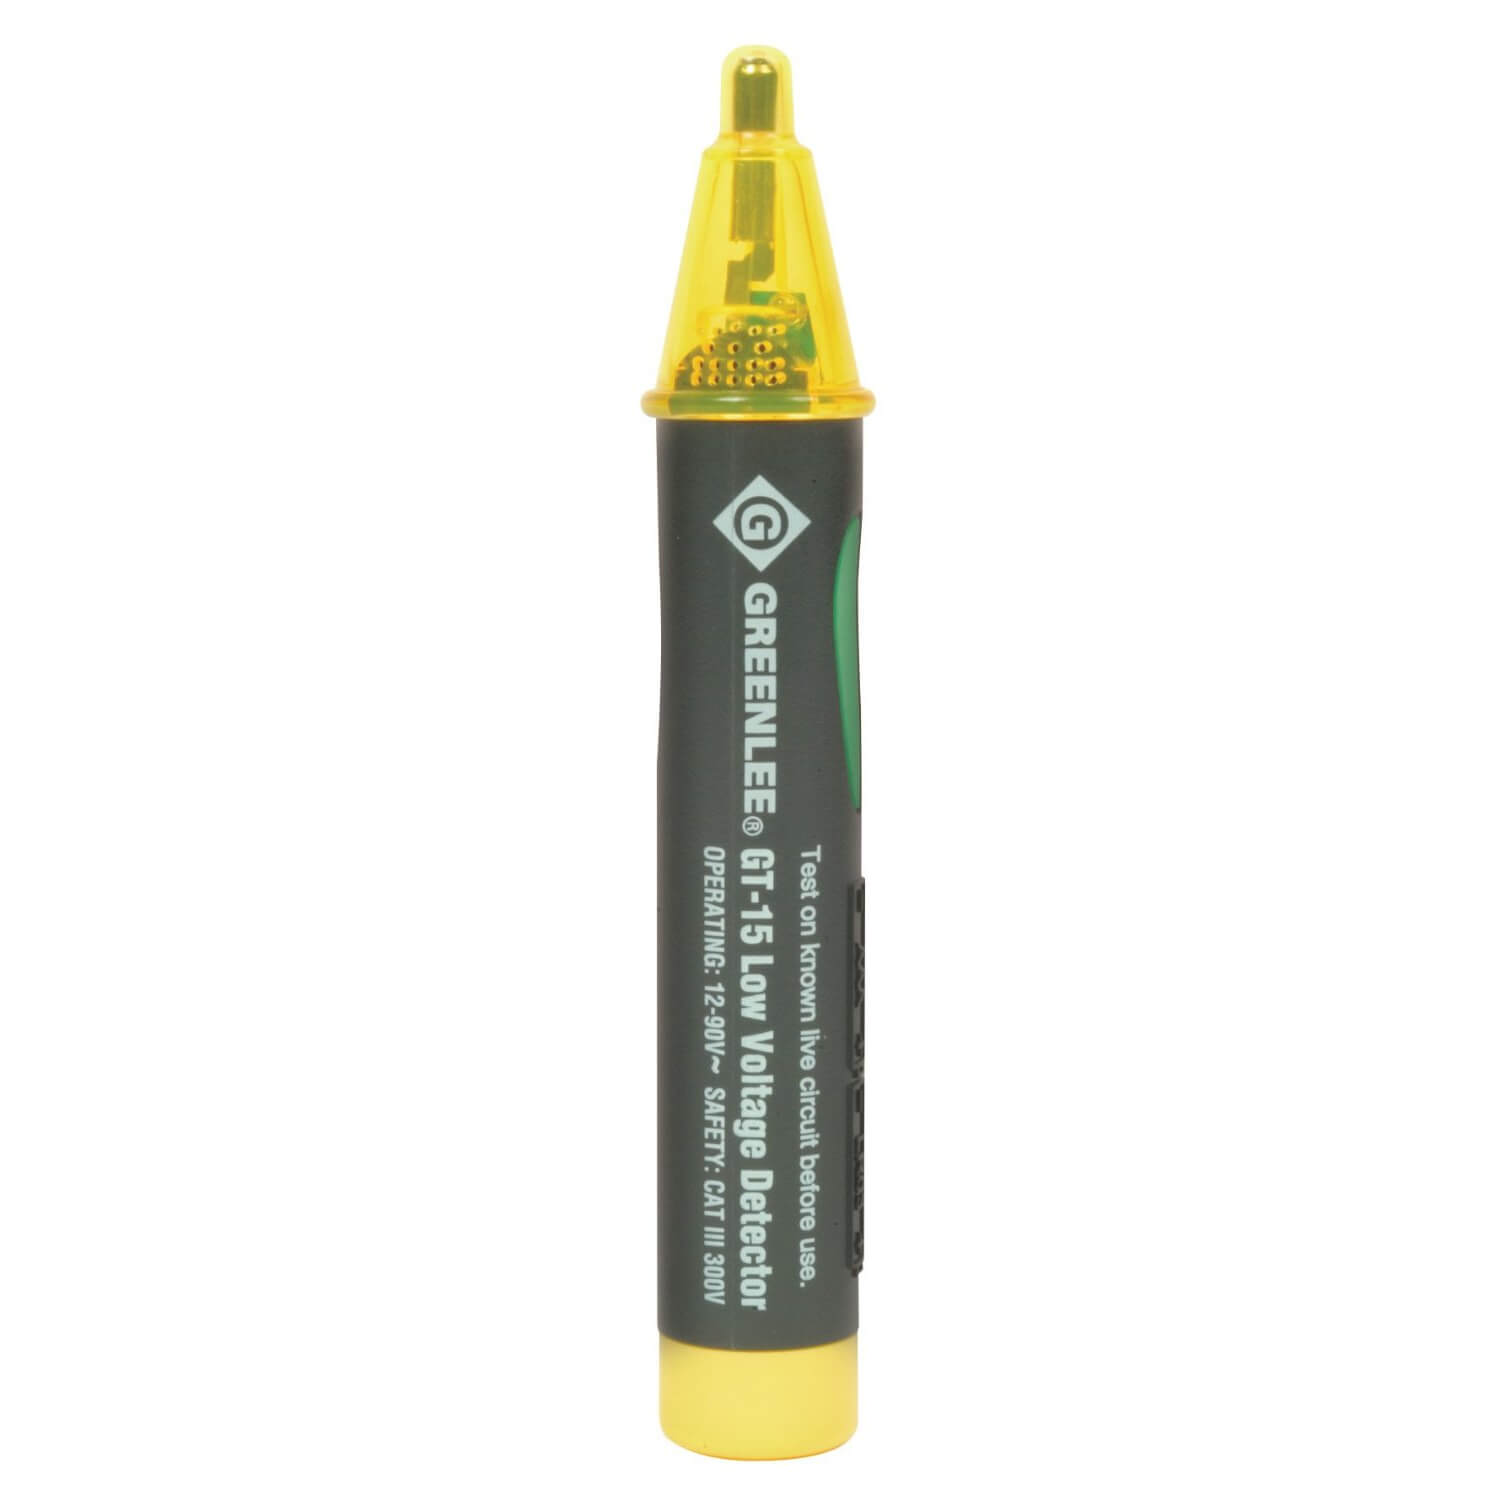 Greenlee GT-15 Voltage Detector Non-Contact